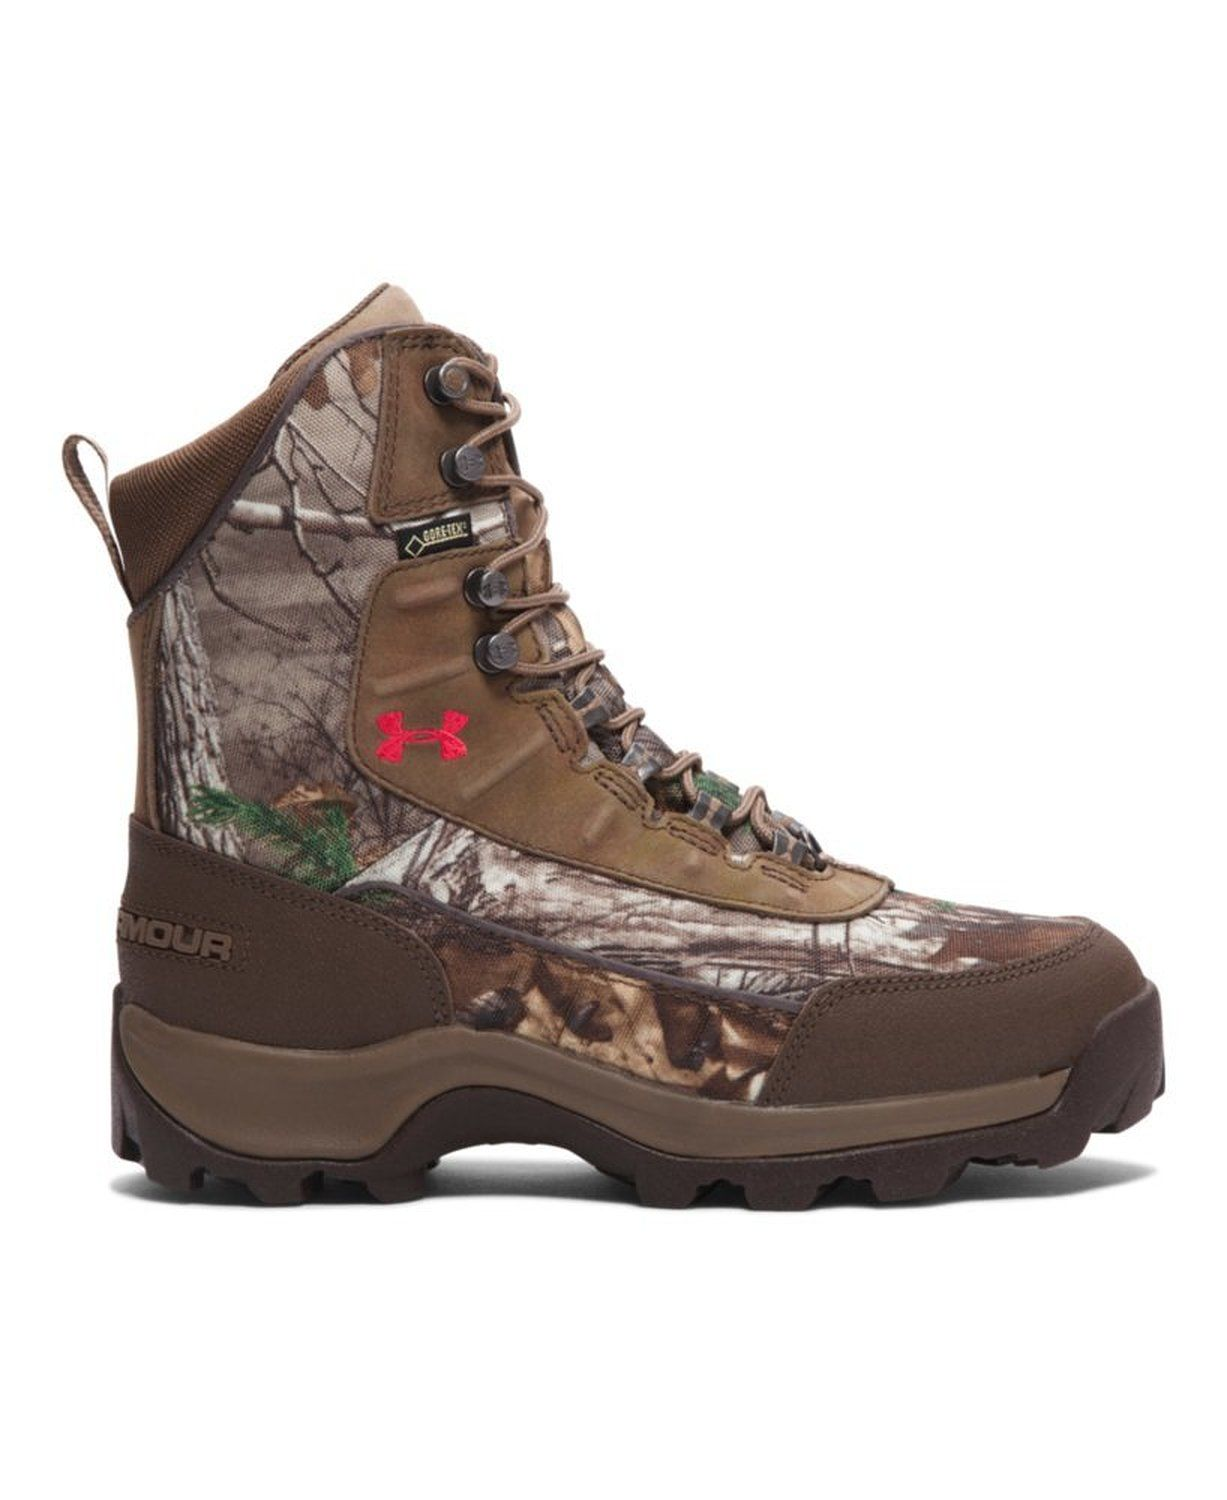 895b6e6d0f3 116 Best Women's Hunting Shoes images in 2017 | Shoes, Hunting boots ...